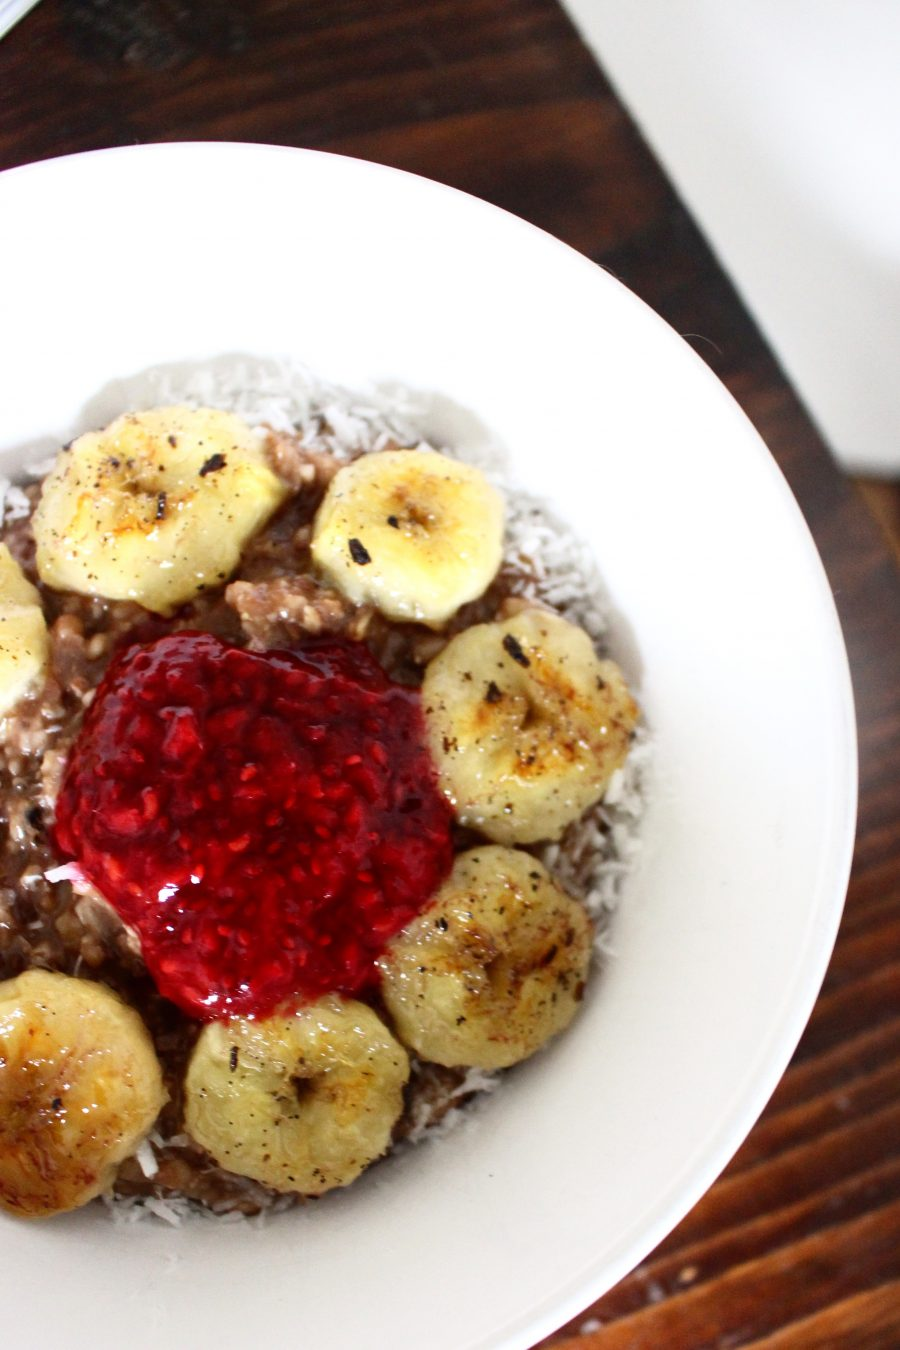 Dark Chocolate-Banana Porridge